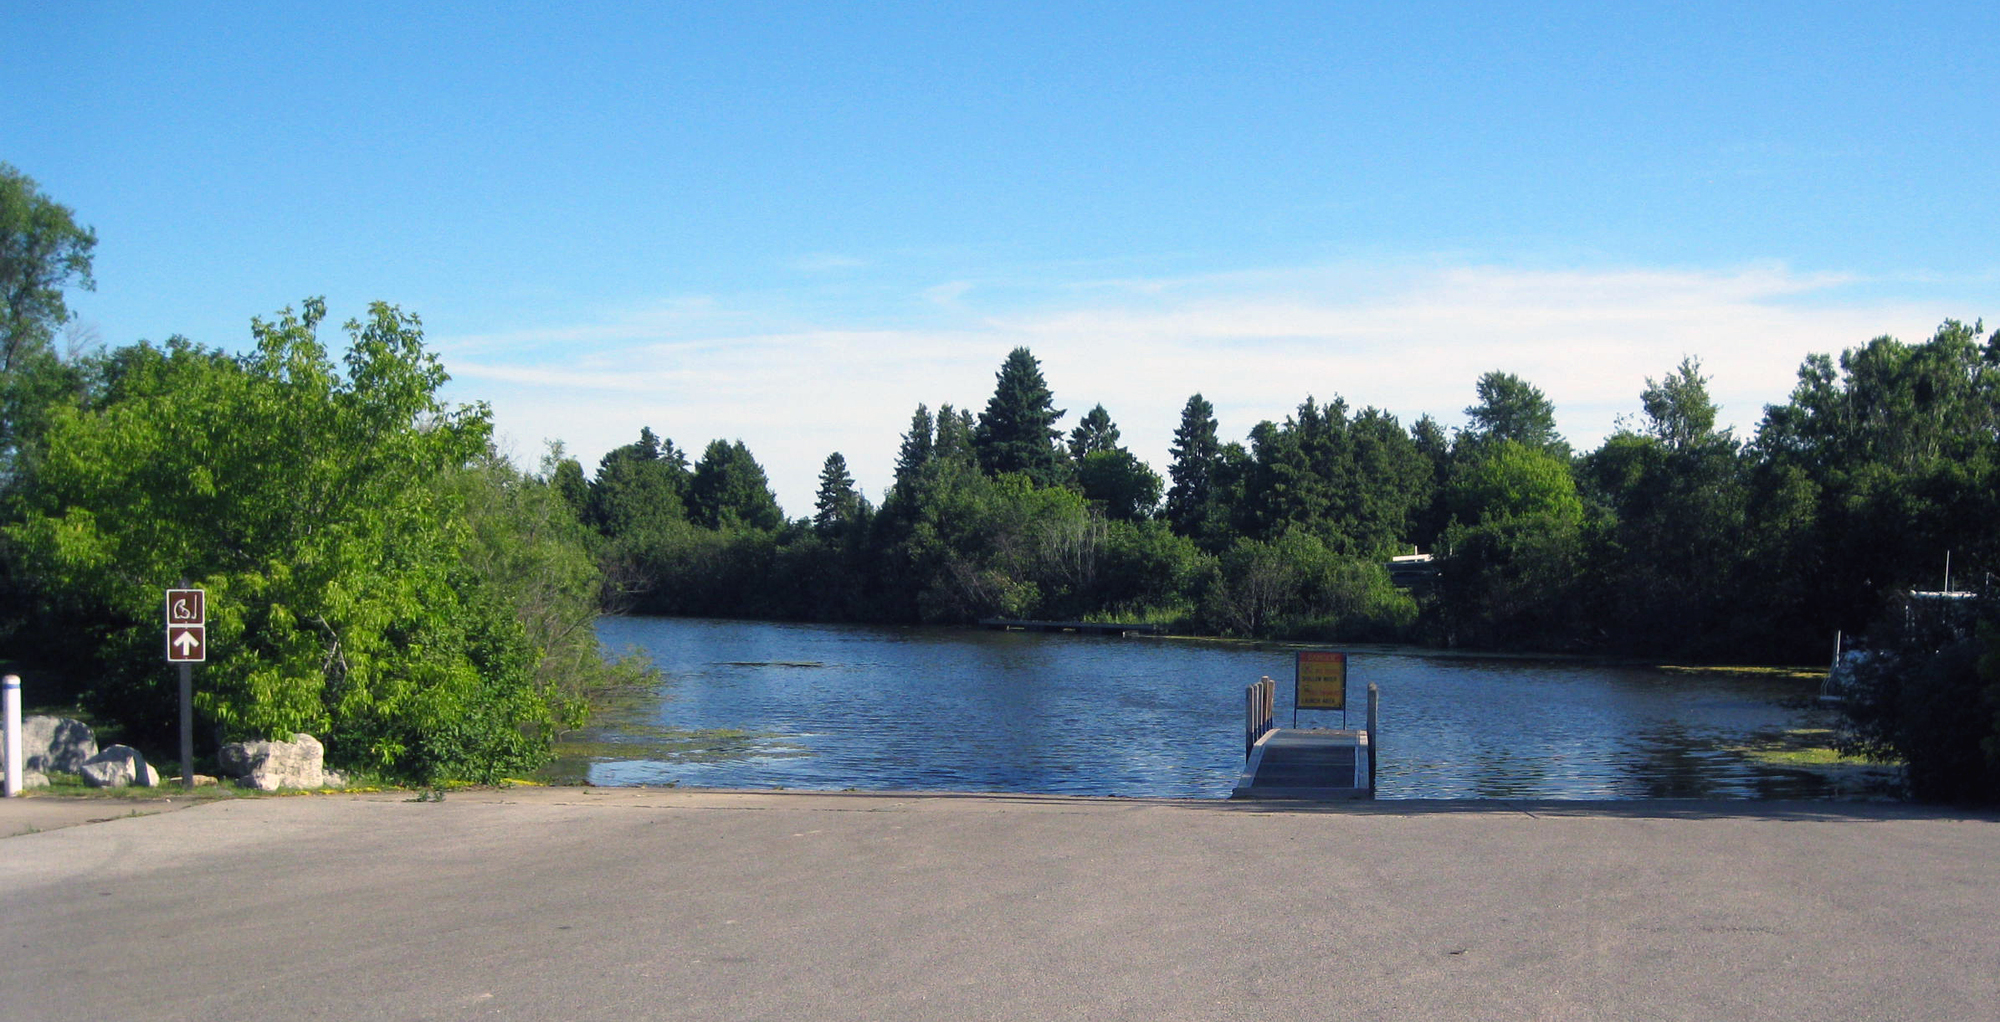 The Nahma boating access site in Delta County will be temporarily closed Oct. 3 for a ramp replacement project.